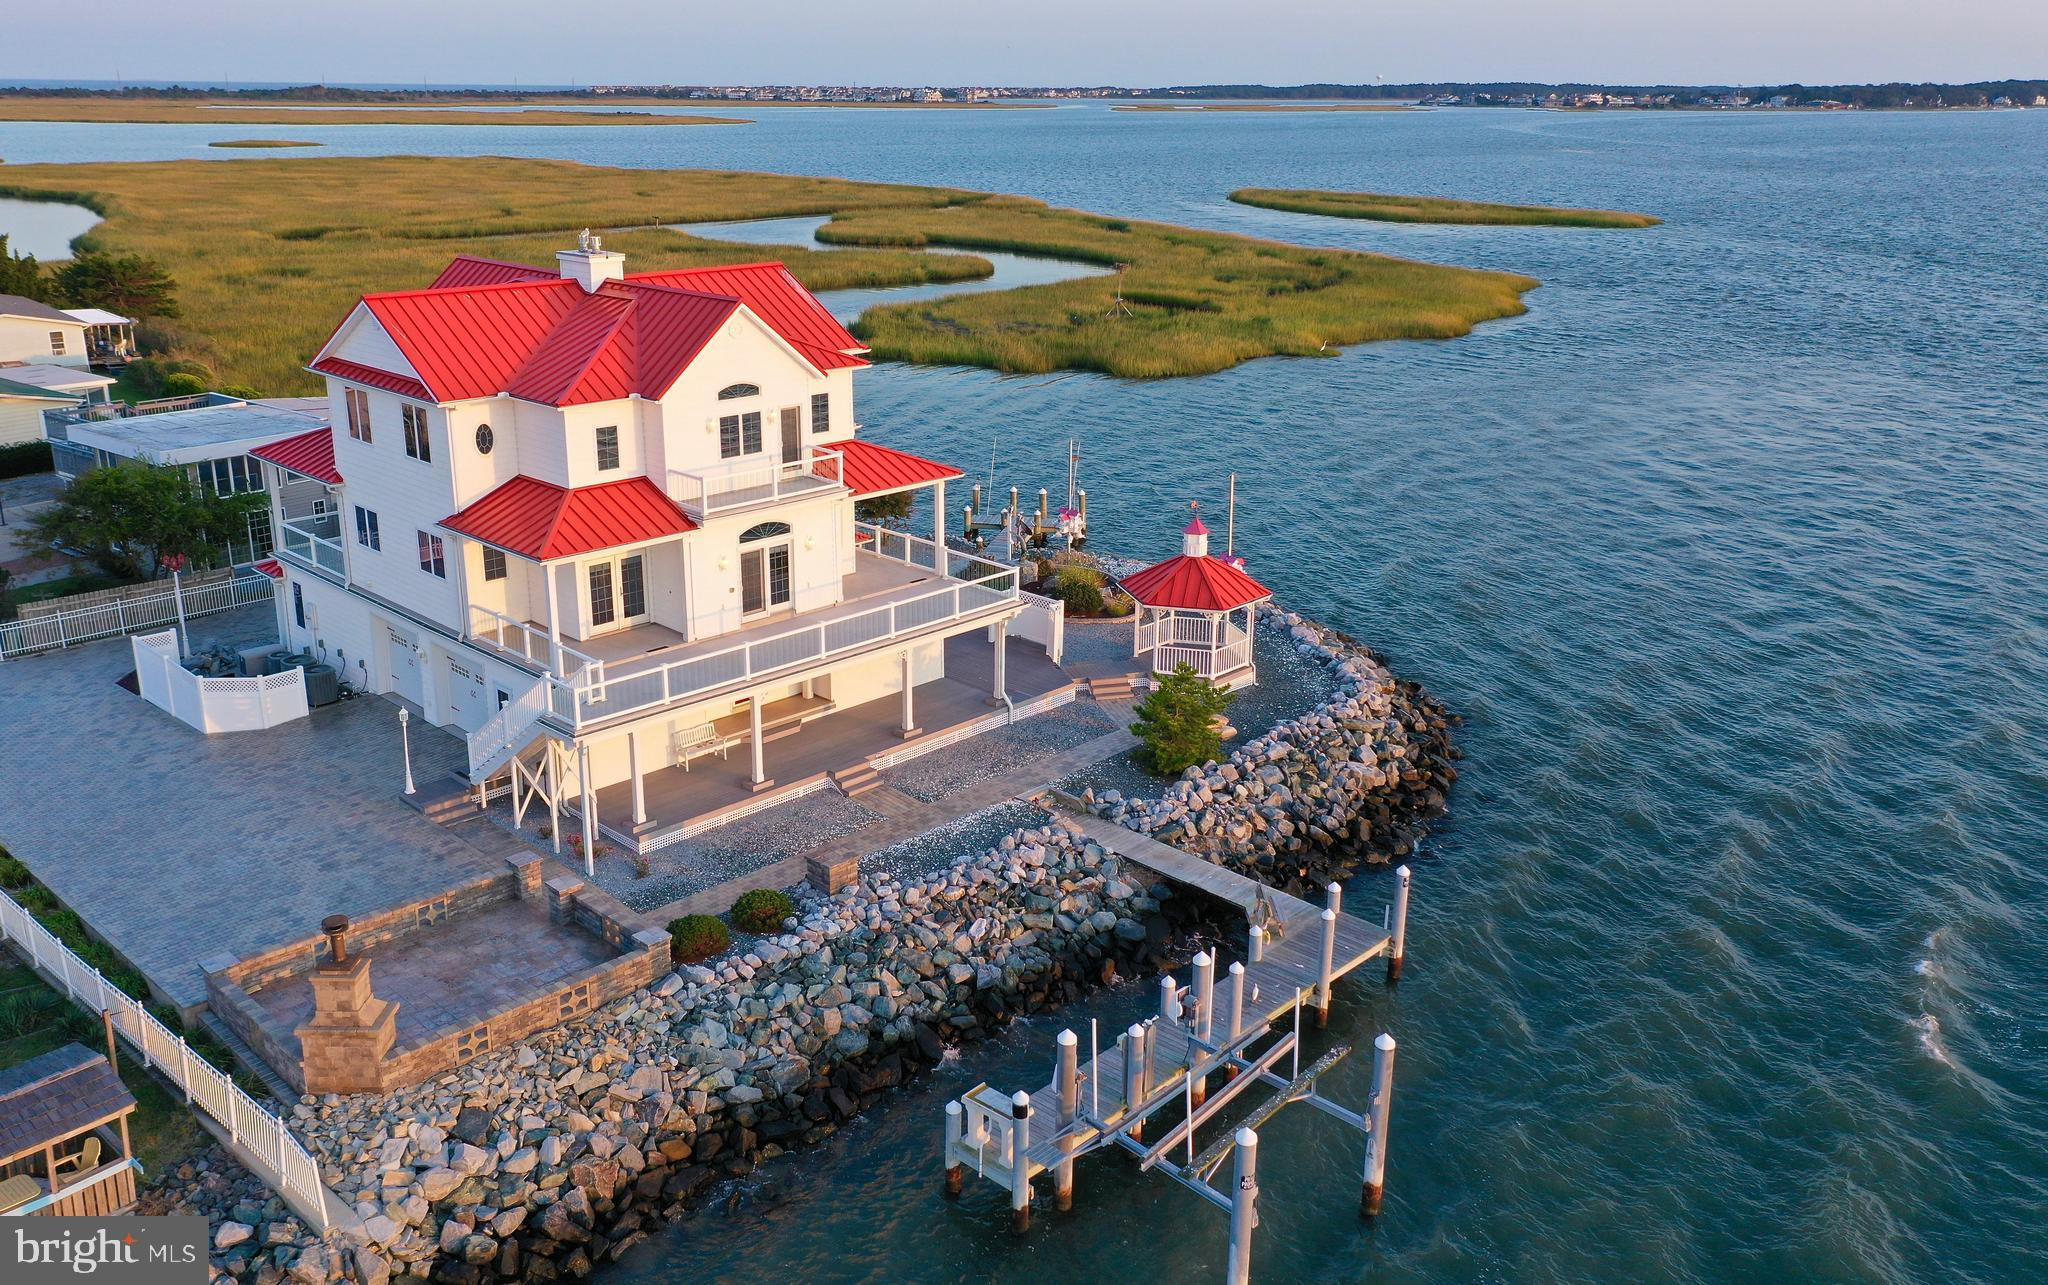 "If You are Looking for a One of Kind, One Off,  Waterfront  Property in the Delaware Beaches with Spectacular Open Bay Vistas this is It! Located inside the Gated Community of ""The Point at Indian River"" this Gorgeous Waterfront Home is Surrounded  Deep Water of the Indian River and Bay Offering Direct Access to the Atlantic Ocean,  This Home  was Built by  the Legendary Delaware  Builder ""Jack Parker"" and was His Personal Home. He Spared No Expense Building this True Waterfront Master Piece. The Property Has its Own Gated Driveway providing Extra Privacy and Security to the Most Discerning Buyer.  Inside this Coastal Home you will find 3 Levels of Coastal Living each providing Unparalleled  Open Bay Views, The Ground Level Features a Large Oversized 2 Garage, In-Law Suite with Full Kitchen and an Elevator that serves all 3 Levels. The Second Level is the Main Living Area with Full Bath and  Gourmet Kitchen with Gas Cooktop Stove, Featuring 3 Large Open and Covered Decks with Commanding Views of the Open Bay and Neighboring Marina,  the 3rd Level is Mainly Devoted the Master Suite & Bath with His & Hers Walk-in Closets, Morning Kitchen, Fireplace and Porch and Decks with Grand Open Vistas the Indian River and Bay, There is also a Second Master on this Level with Access to an Additional Open Bay View Deck, This Home also has Propane Back-Up Generator in case of lose of Power you will be protected, The Main Dock has  Deep Water with ""as is boat lift"" and can accommodate a Large Boat, the Second Dock is Perfect for Launching Canoes or Kayaks with a quick paddle to the Coastal Marshes, This Beautiful Waterway is excellent for all water sports, Excellent fishing from the Dock  with Catches Striped Bass AKA Rockfish, Flounder, and Bluefish to name a few, Also Clamming in the Sand Bar areas is Outstanding and Catching the abundant Blue Crabs is a lot fun too right of your Dock.  This is a True Beach Paradise Offering a Unique Blend of the Best in Coastal Living has Availab"